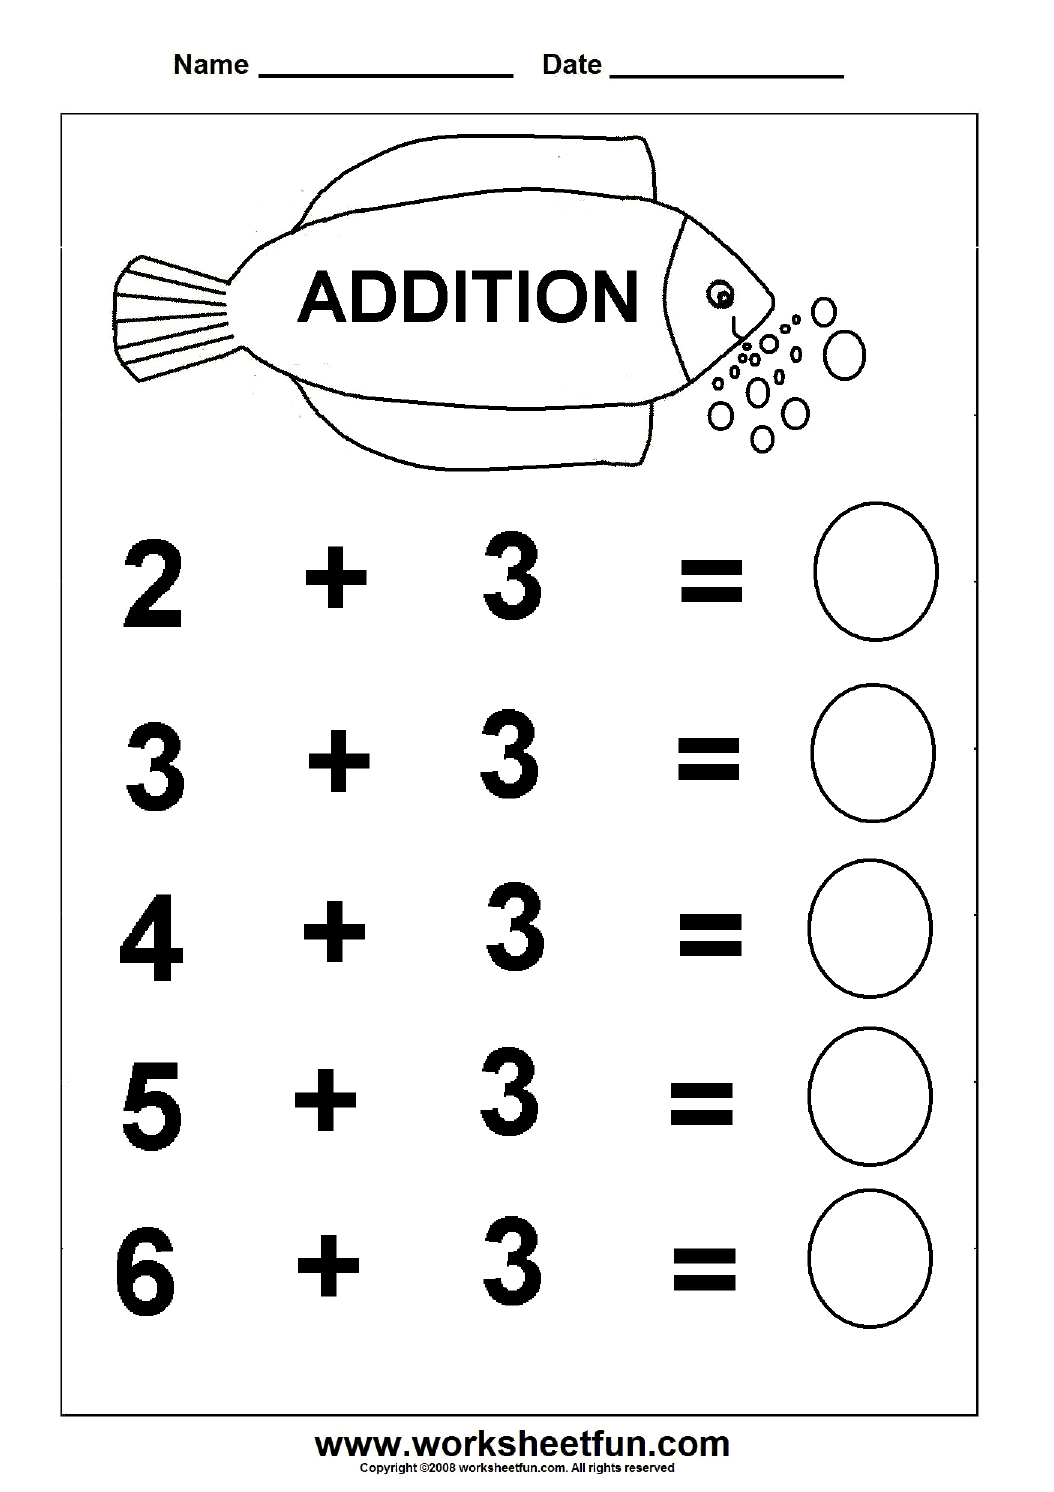 Math Addition Worksheets Free The Best Worksheets Image Collection